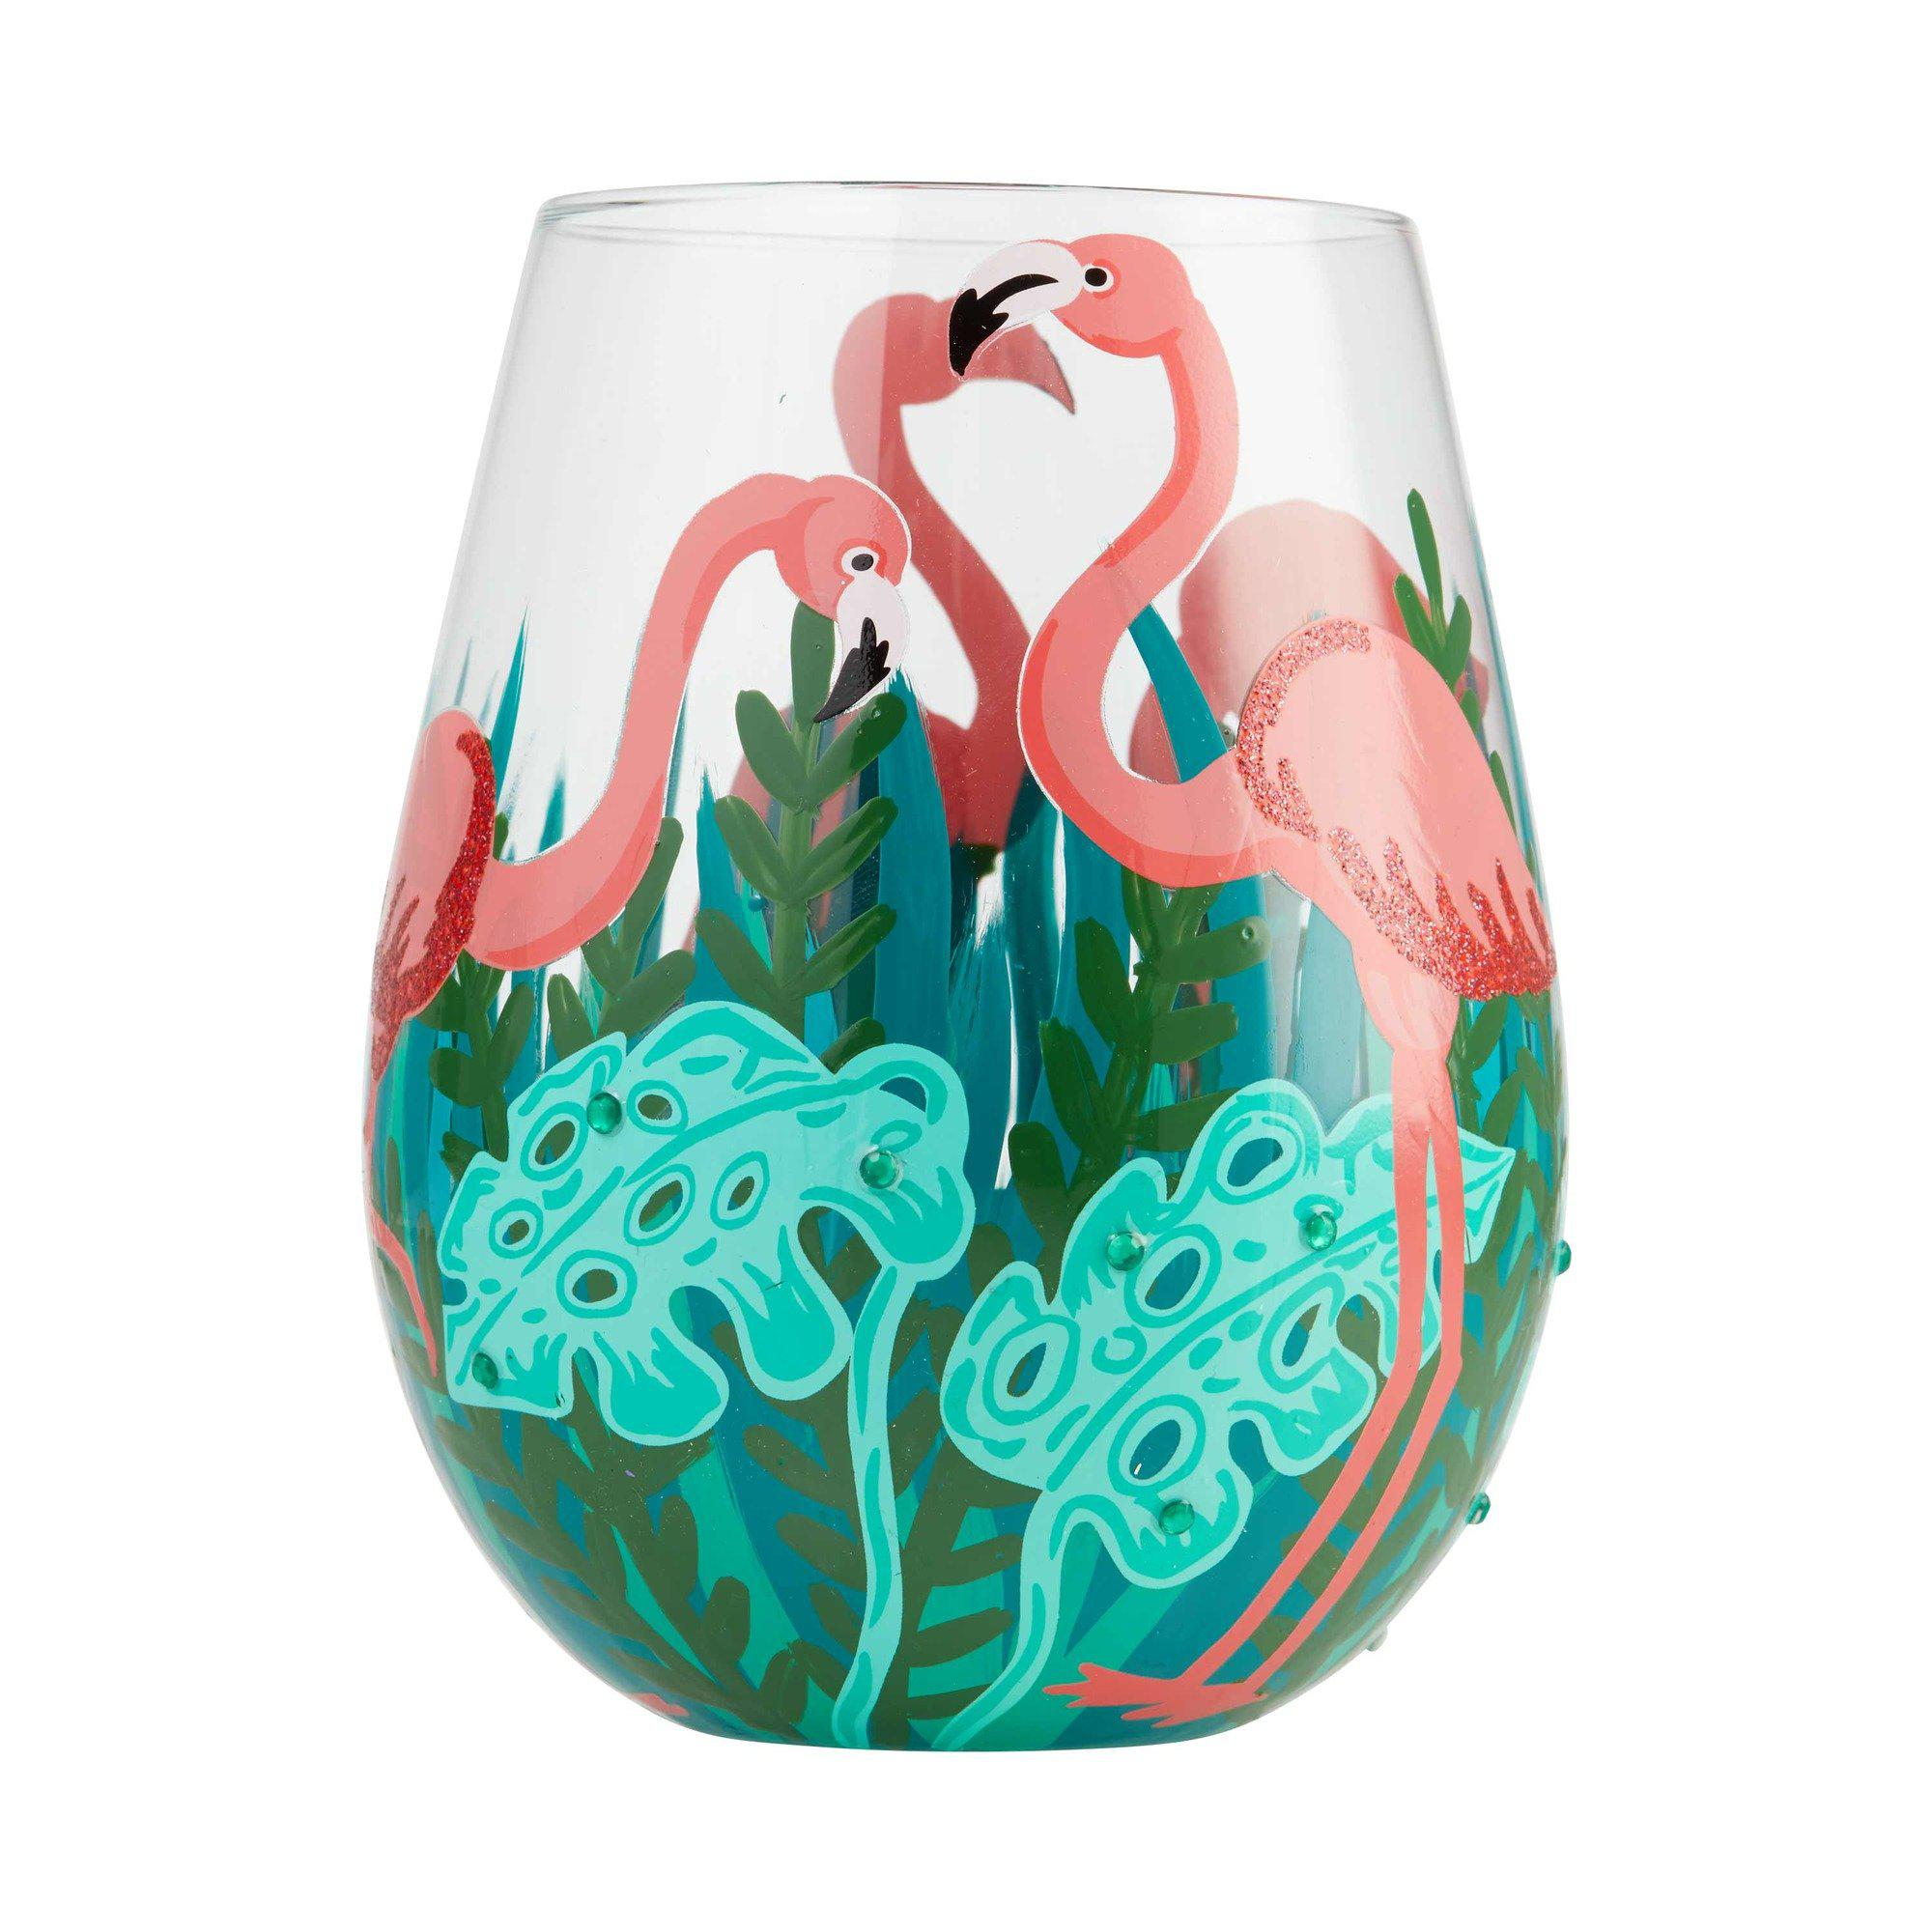 Fancy Flamingo Stemless Wine Glass by Lolita®-Stemless Wine Glass-Designs by Lolita® (Enesco)-Top Notch Gift Shop